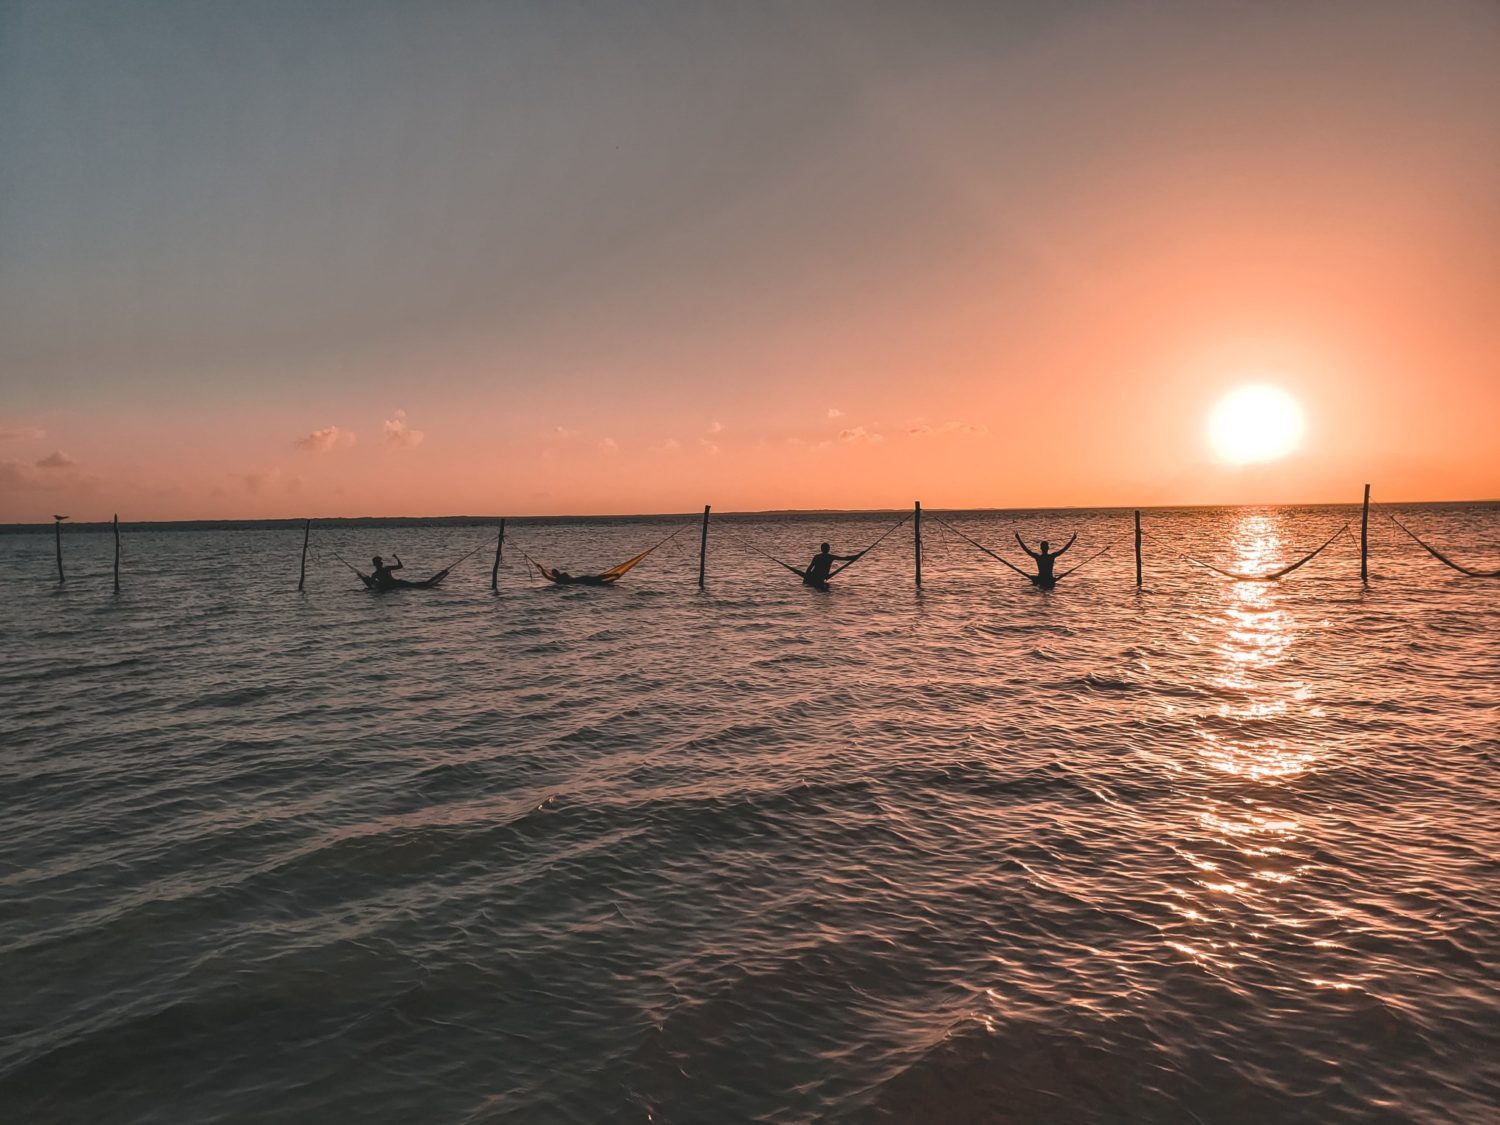 Hammocks in the water at Isla Holbox in the Yucatan Peninsula